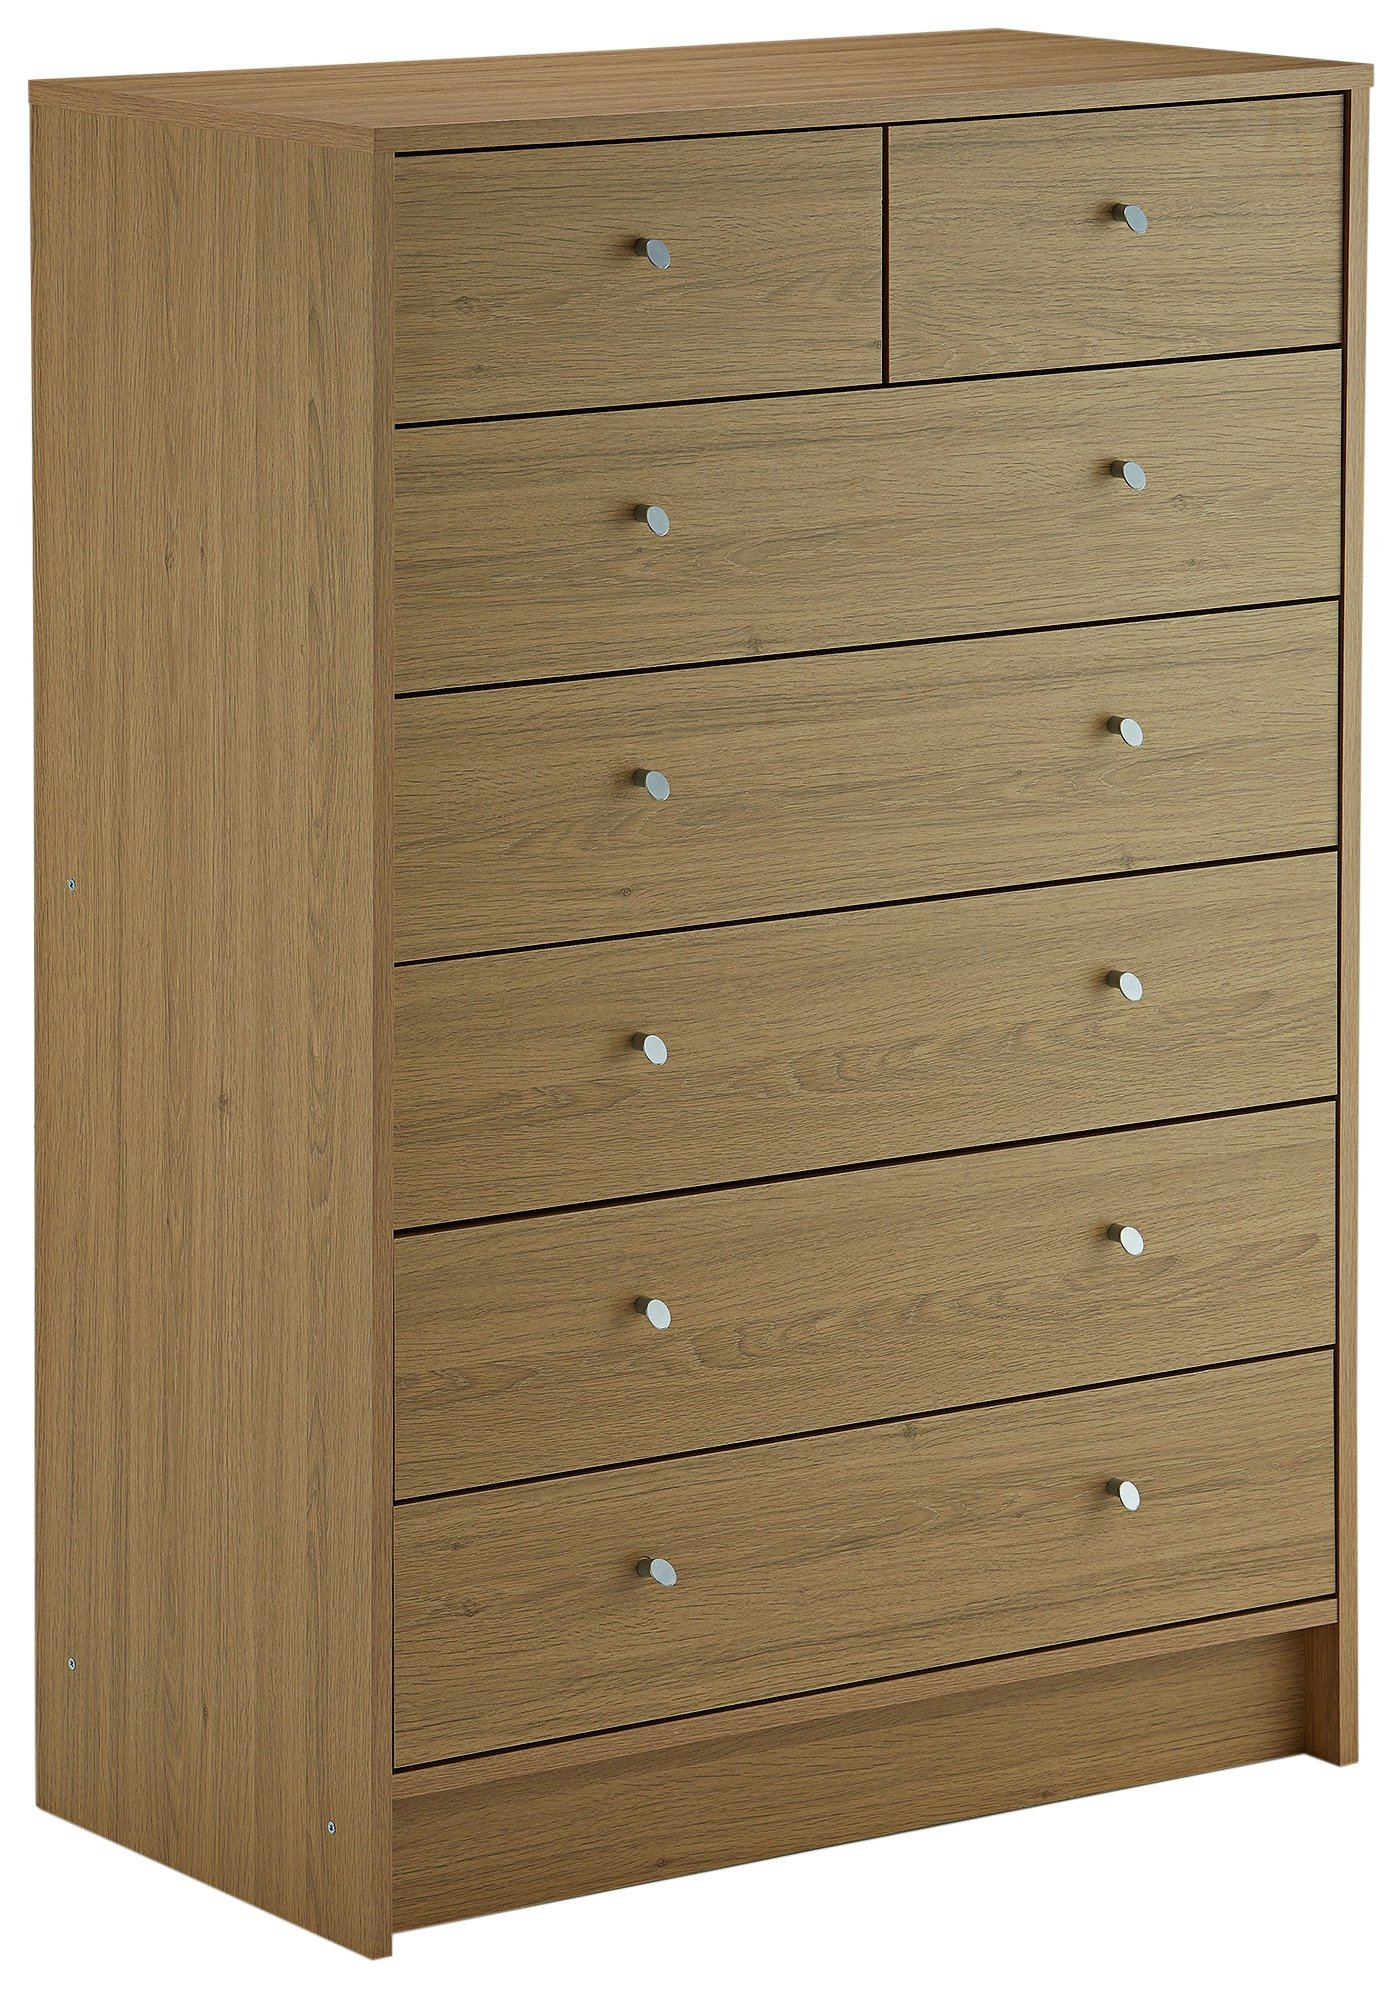 Superb HOME Kids New Malibu 5 + 2 Chest Of Drawers   Oak Effect